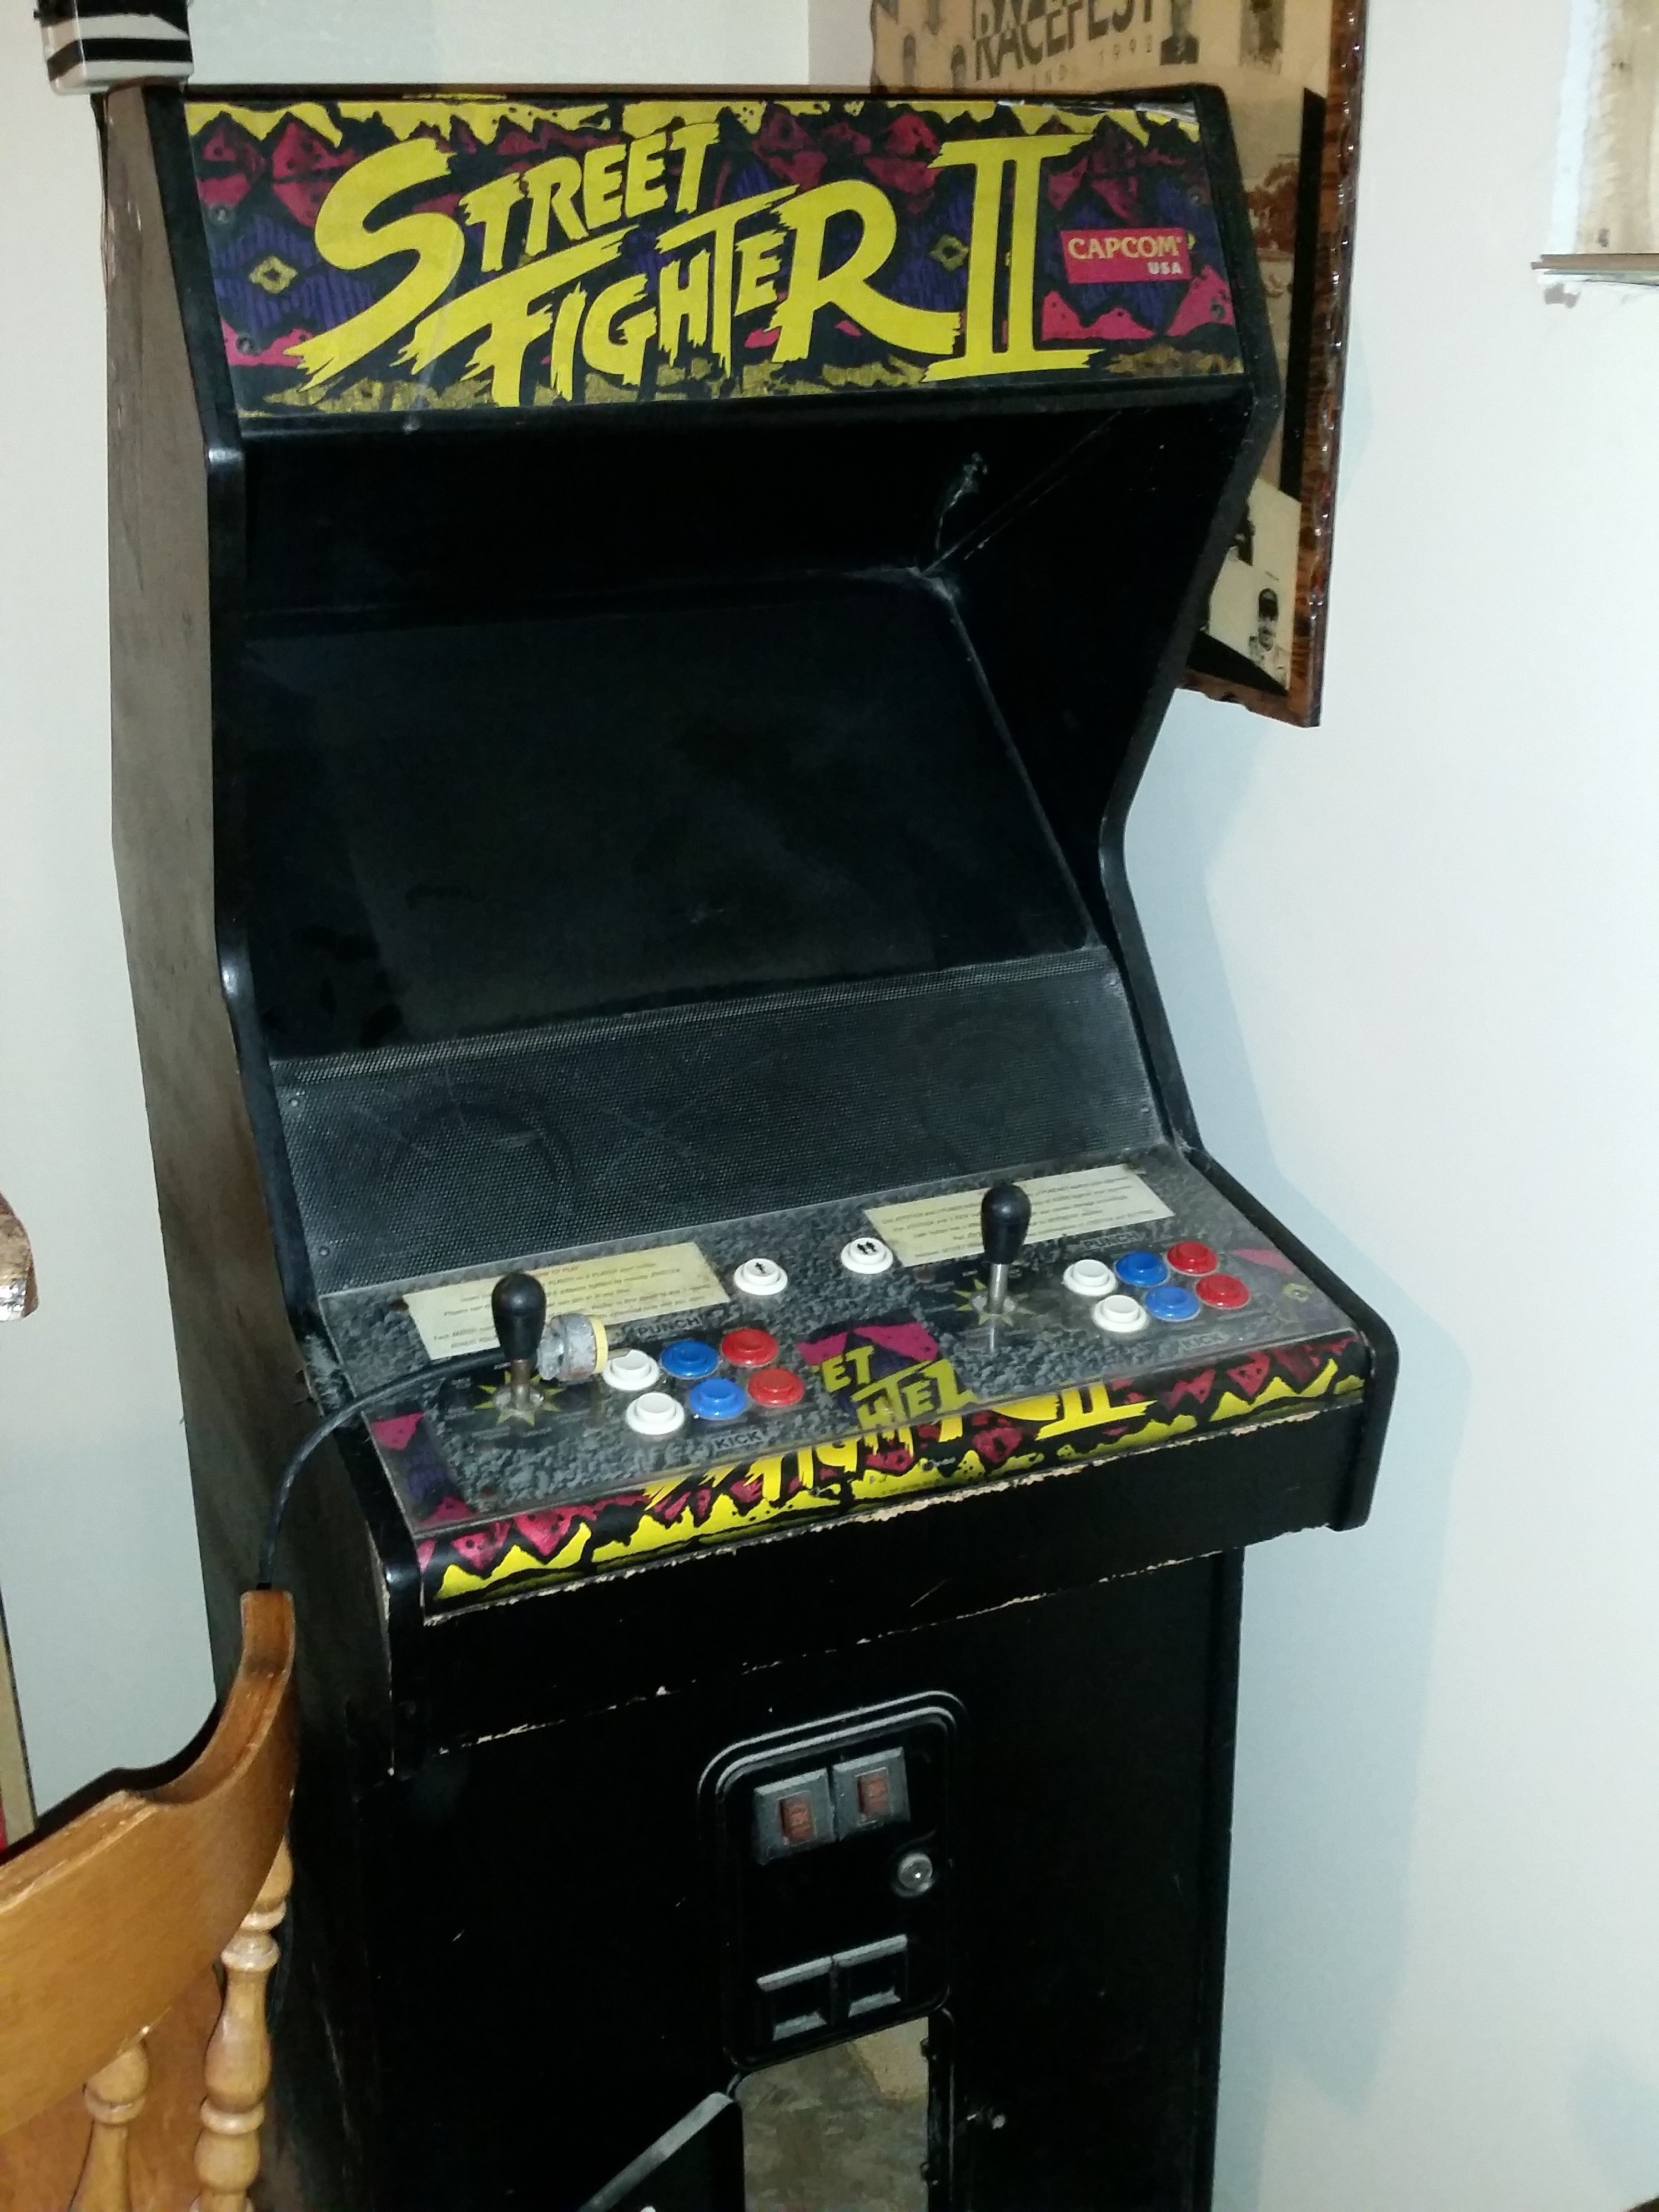 Capcom Street Fighter 2 video arcade game for sale in